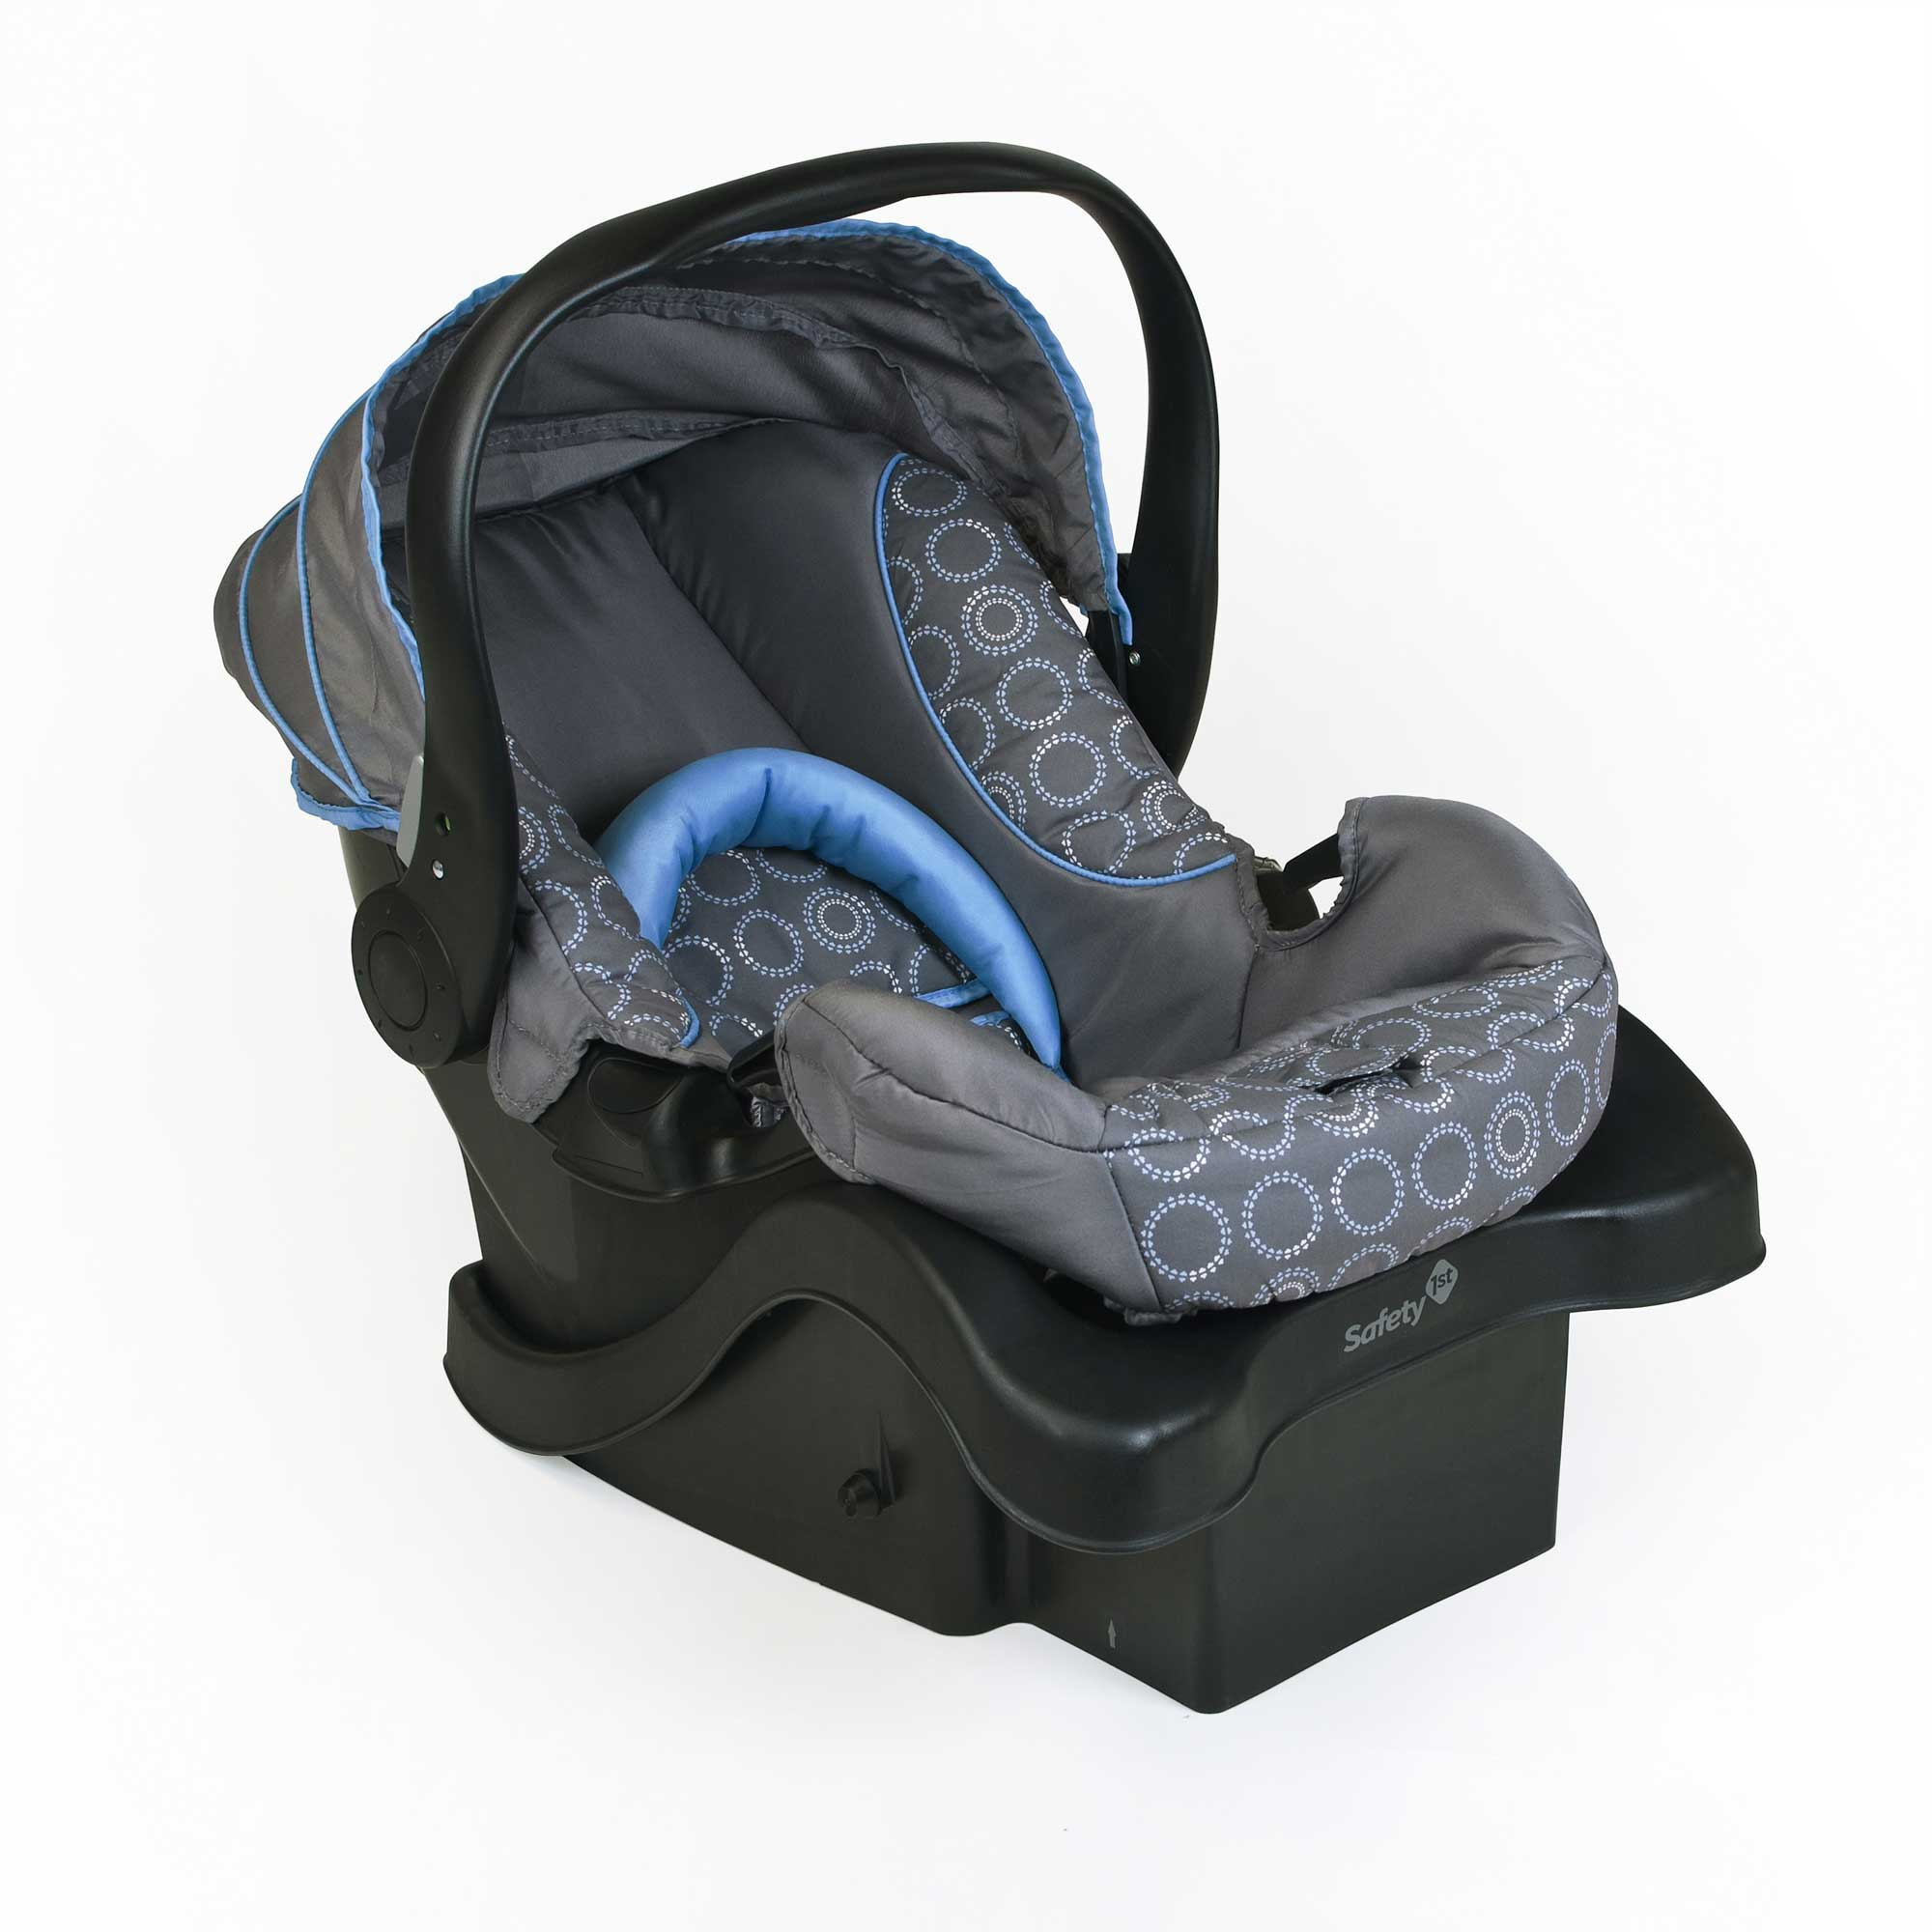 Safety 1st OnBoard35 Infant Car Seat